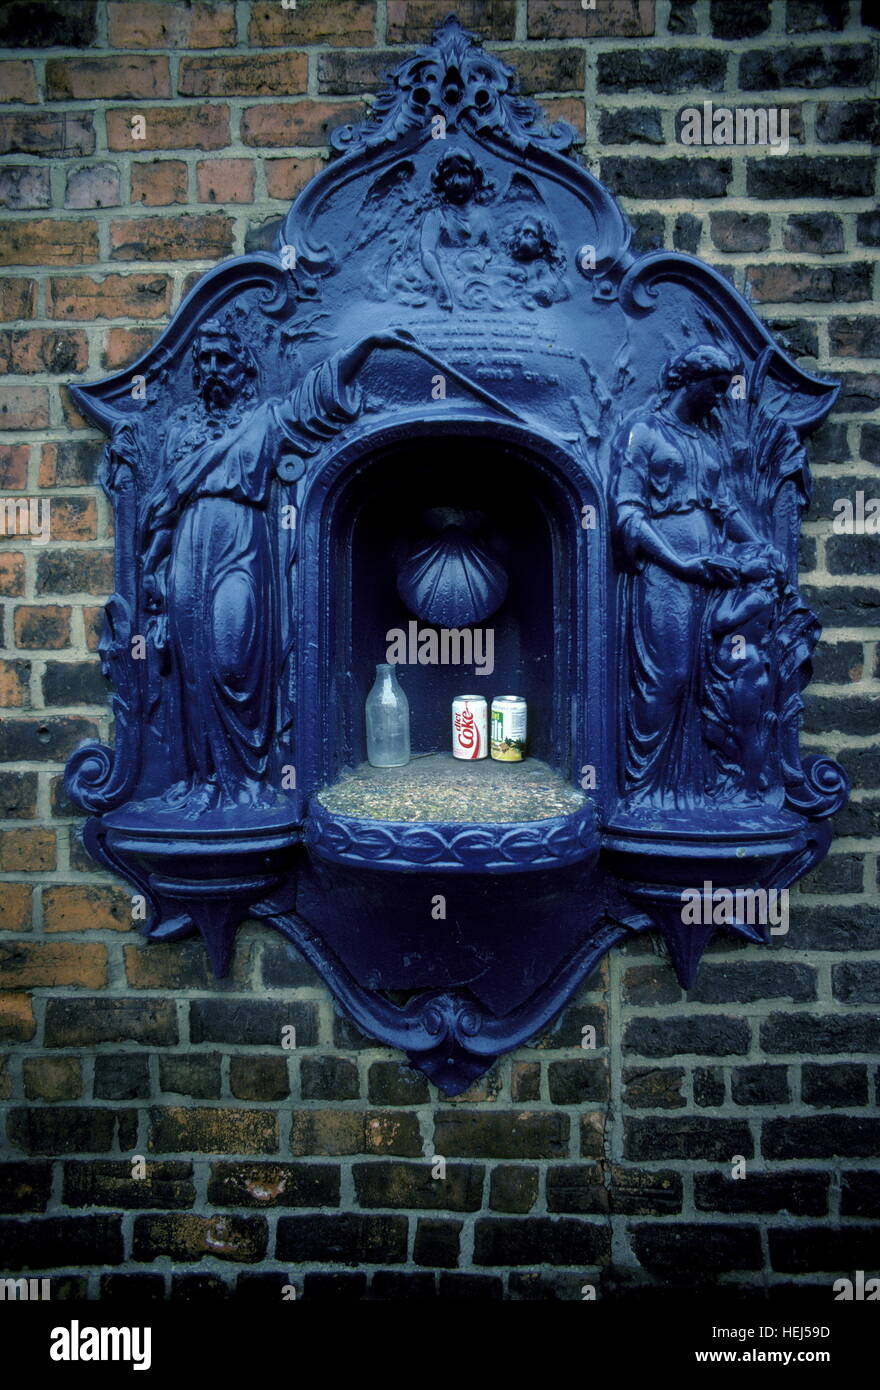 AJAXNETPHOTO. 1987. HEBBURN-ON-TYNE, ENGLAND. - DRINKING FOUNTAIN - VICTORIAN DRINKING FOUNTAIN AT ENTRANCE TO FORMER Stock Photo